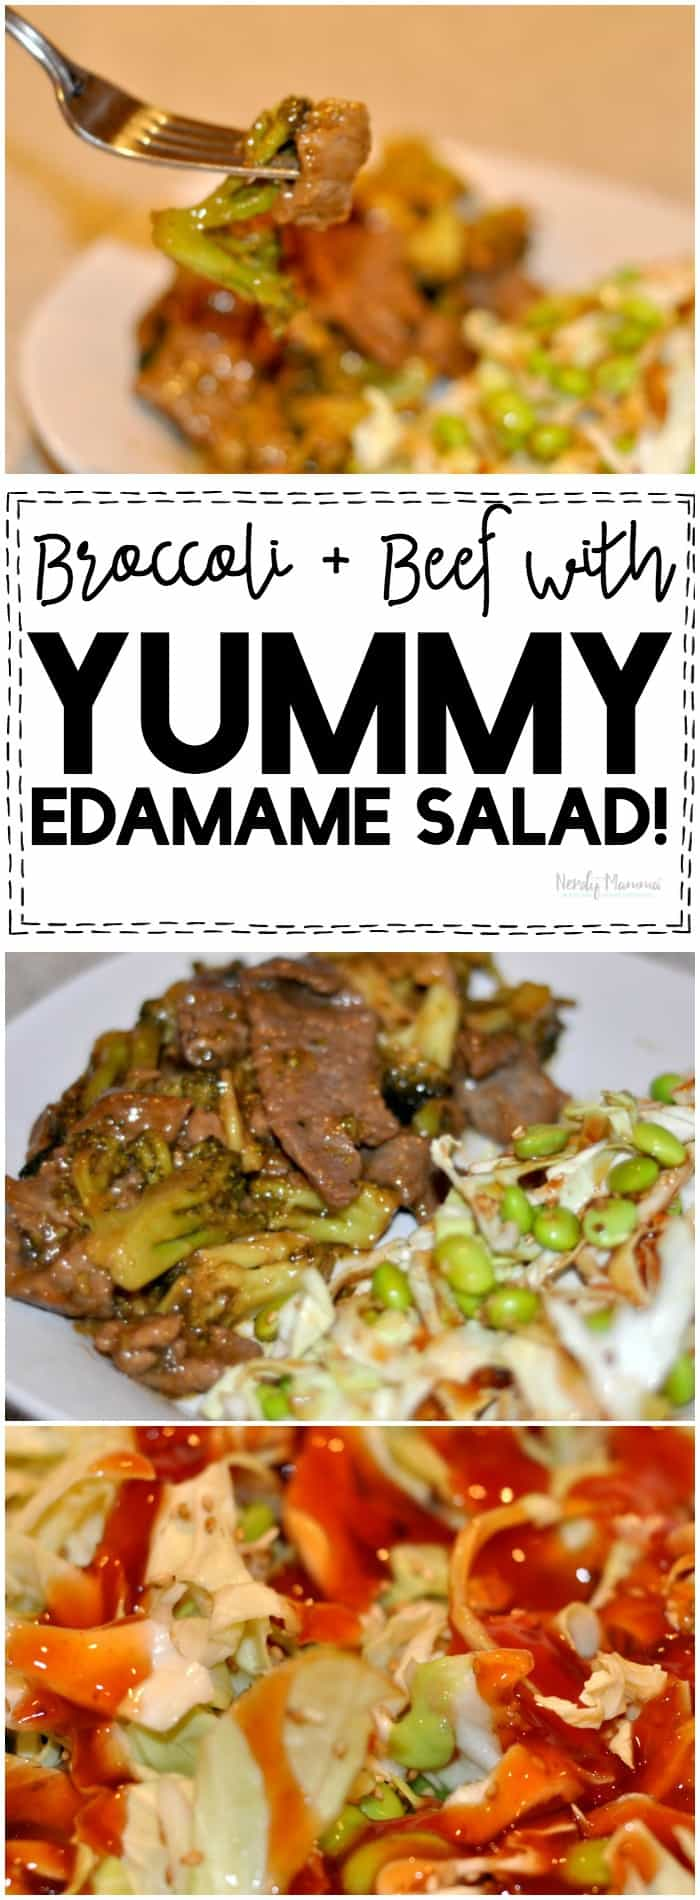 OMG, this beef with broccoli and yummy edamame salad is AMAZEBALLS!